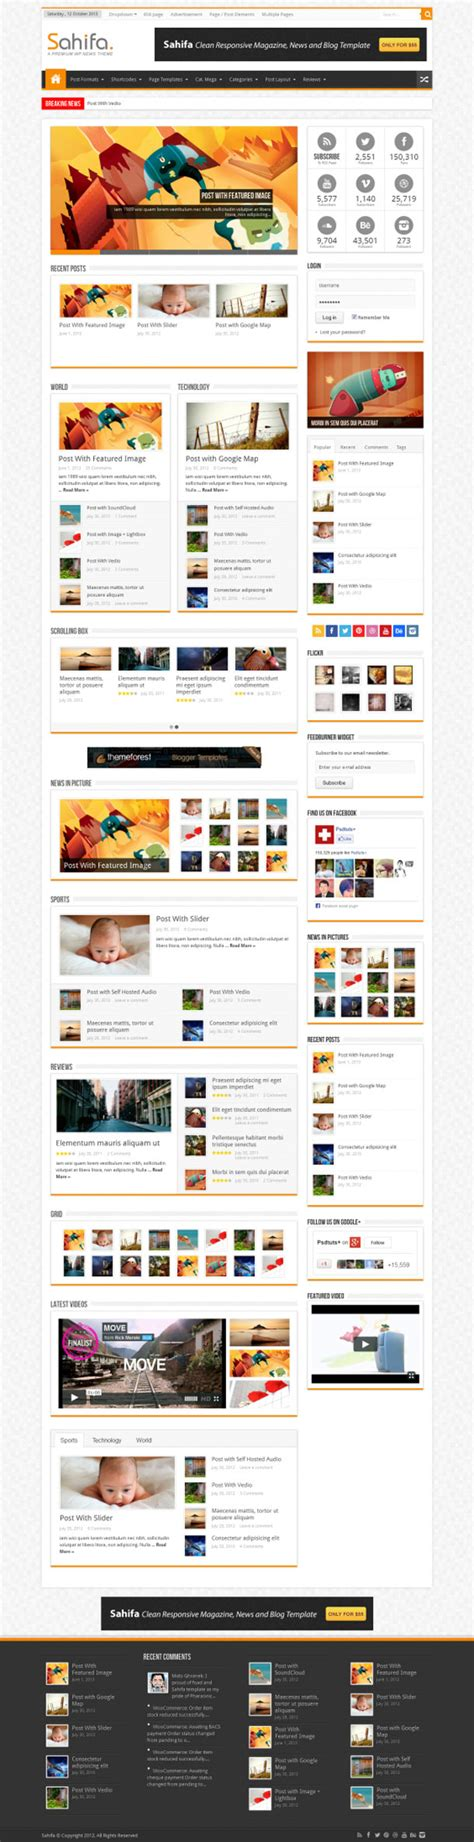 wp content themes sahifa zip sahifa news wordpress theme wp squared wordpress